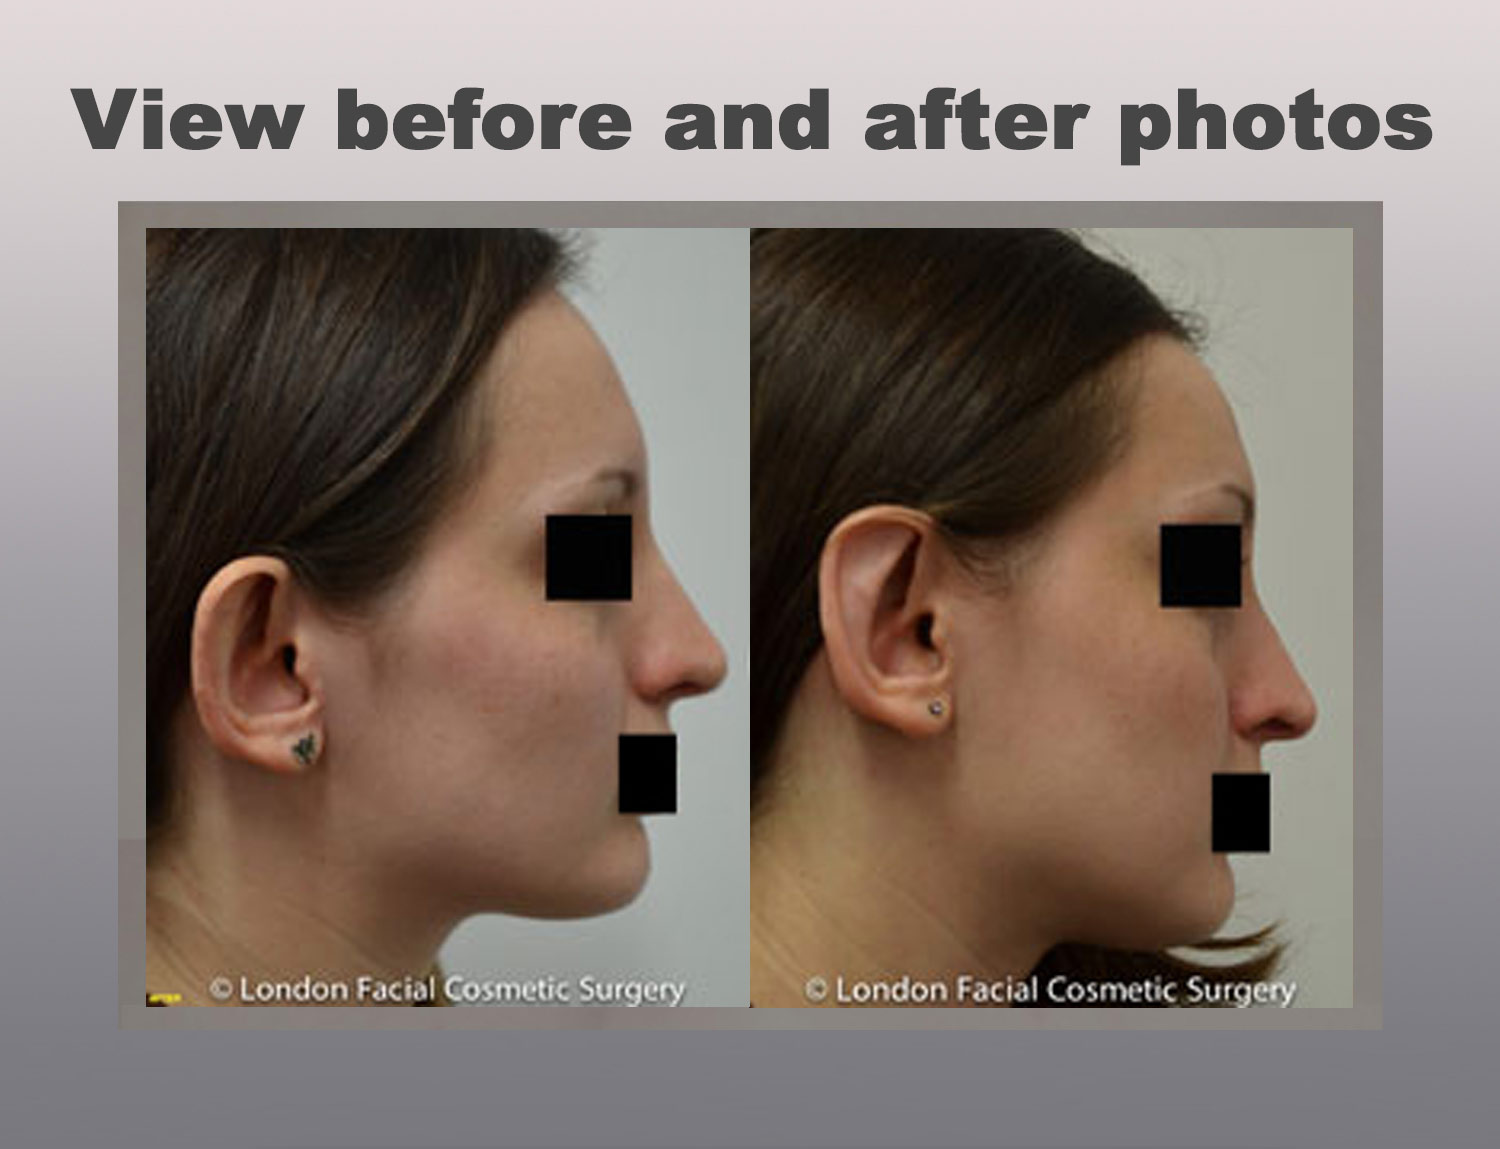 Ear Cosmetic Surgery: View before and after pthotos